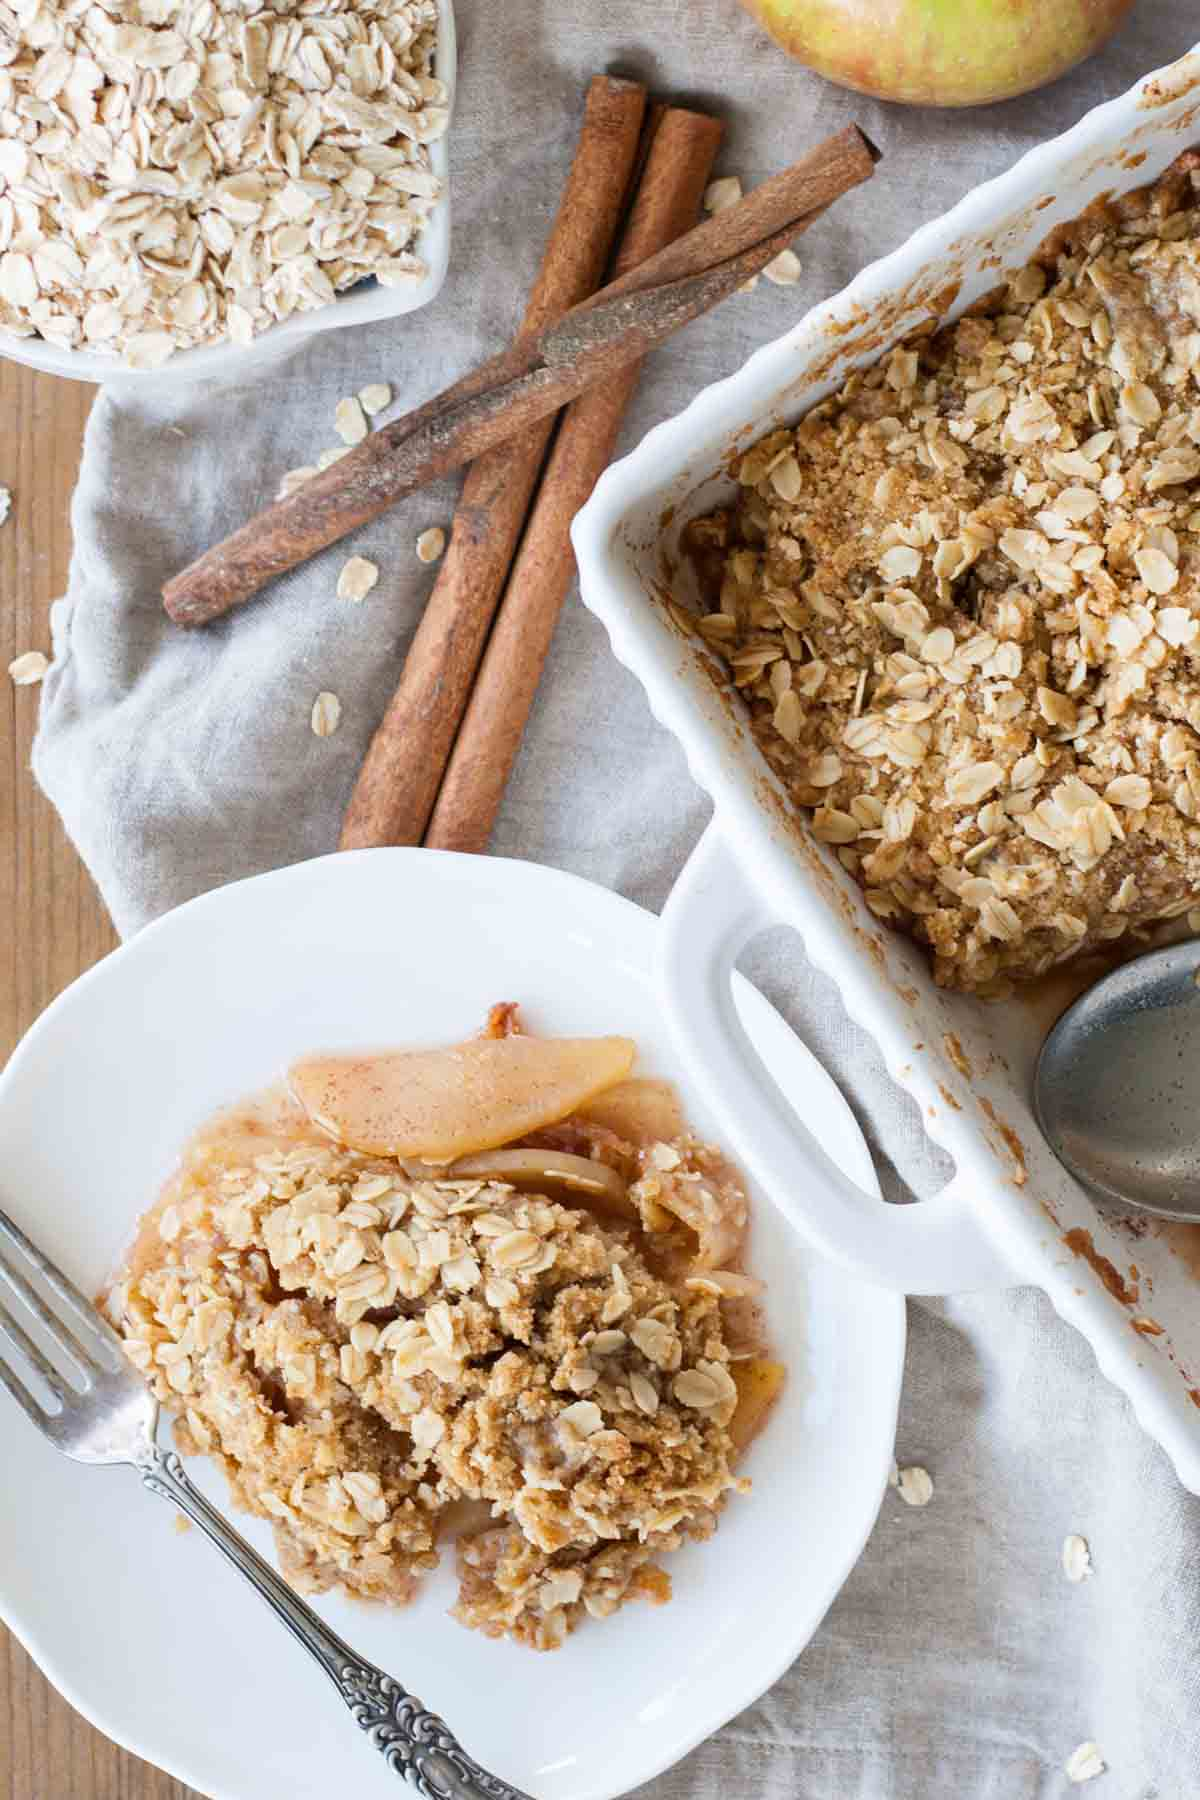 Apple Crisp - Cinnamon spiced apples baked with a delicious oat crumble topping. | livforcake.com